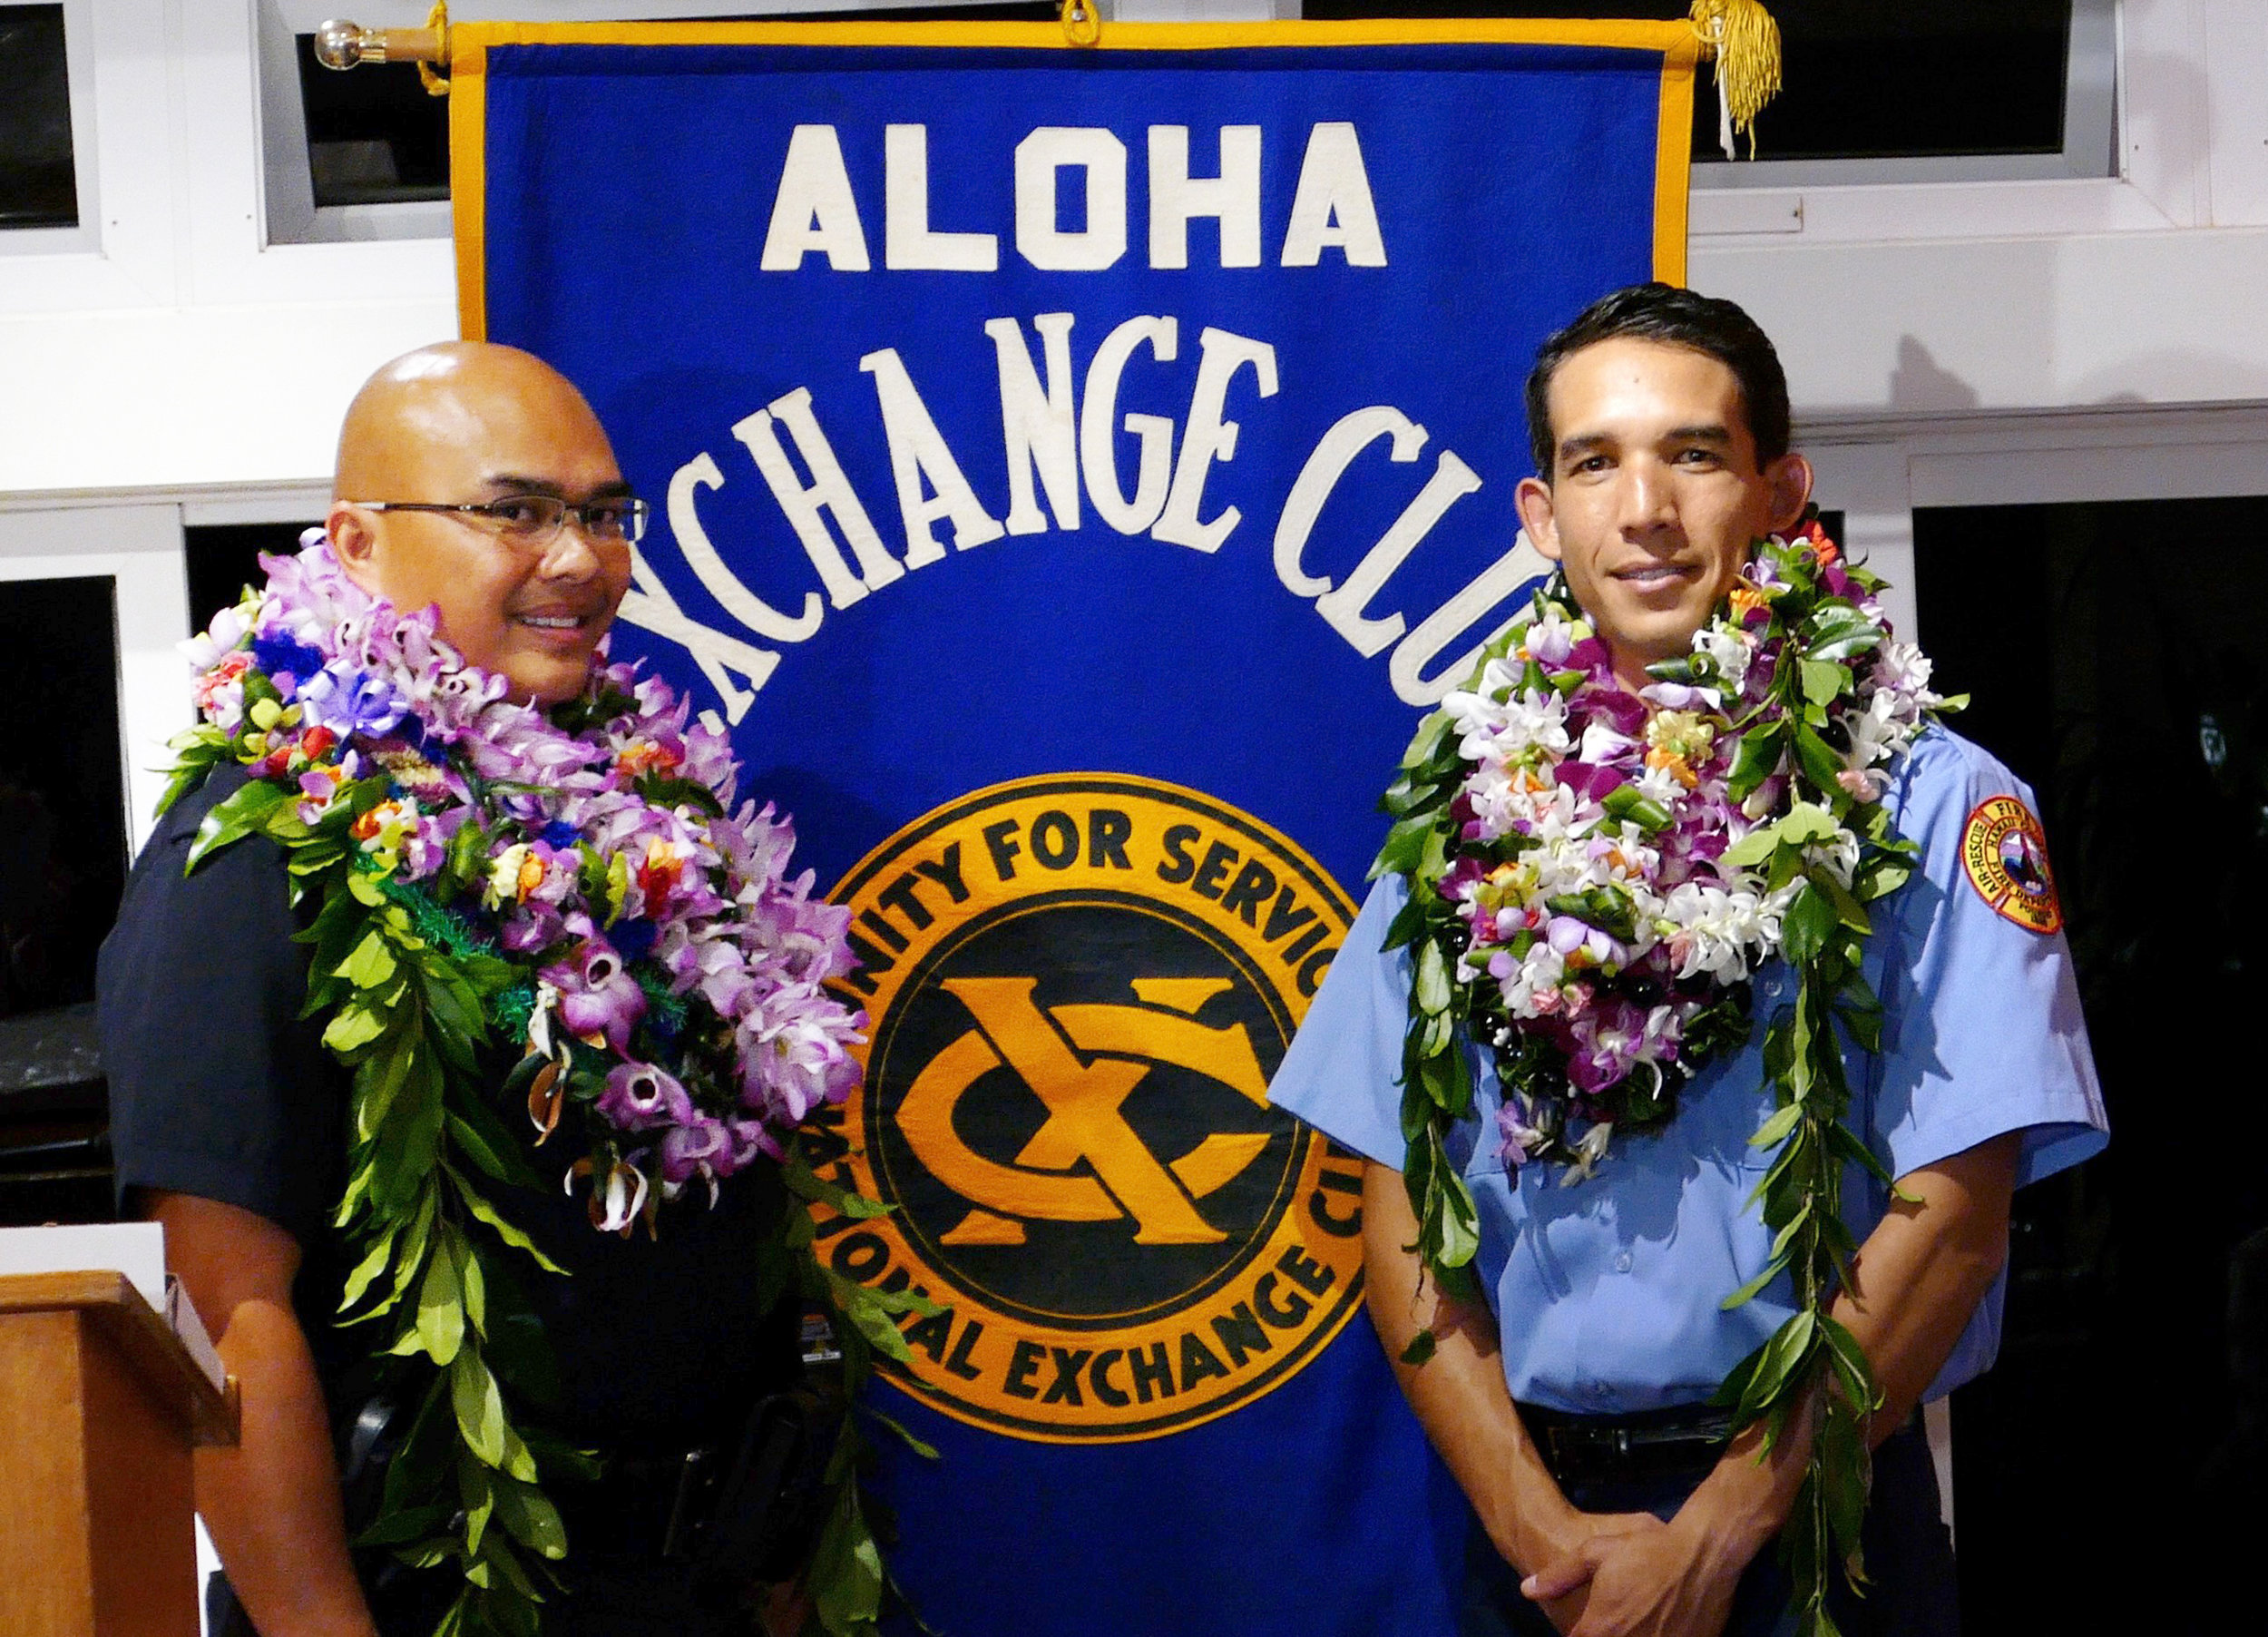 Officer Conrad Bidal (L) Firefighter/EMT Kainoa Willey (R). Credit: Hawaii 24/7